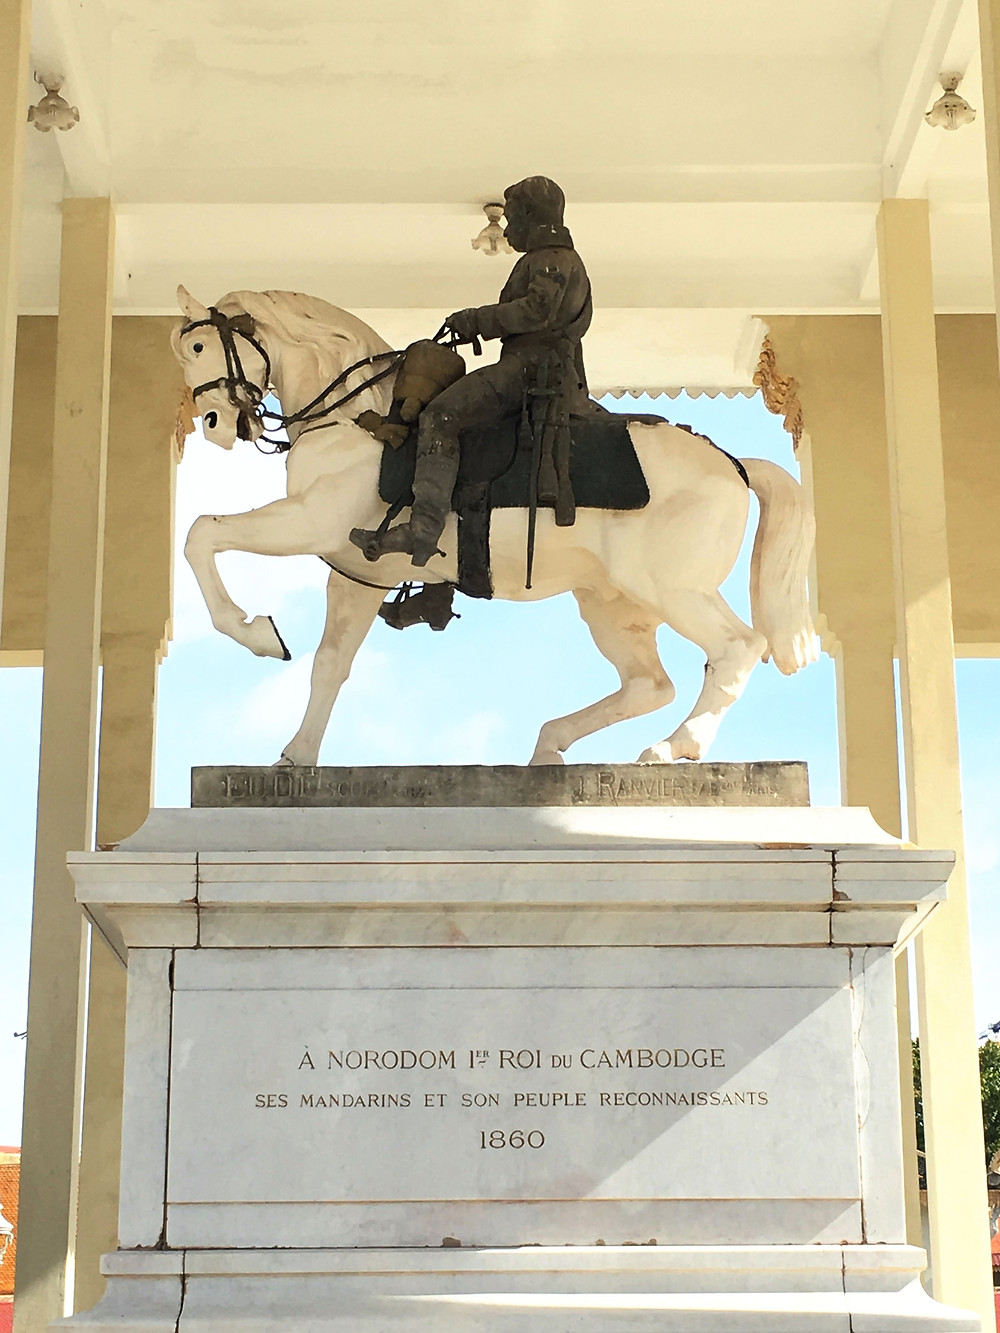 A statue of King Norodom within the grounds of the Royal Palace